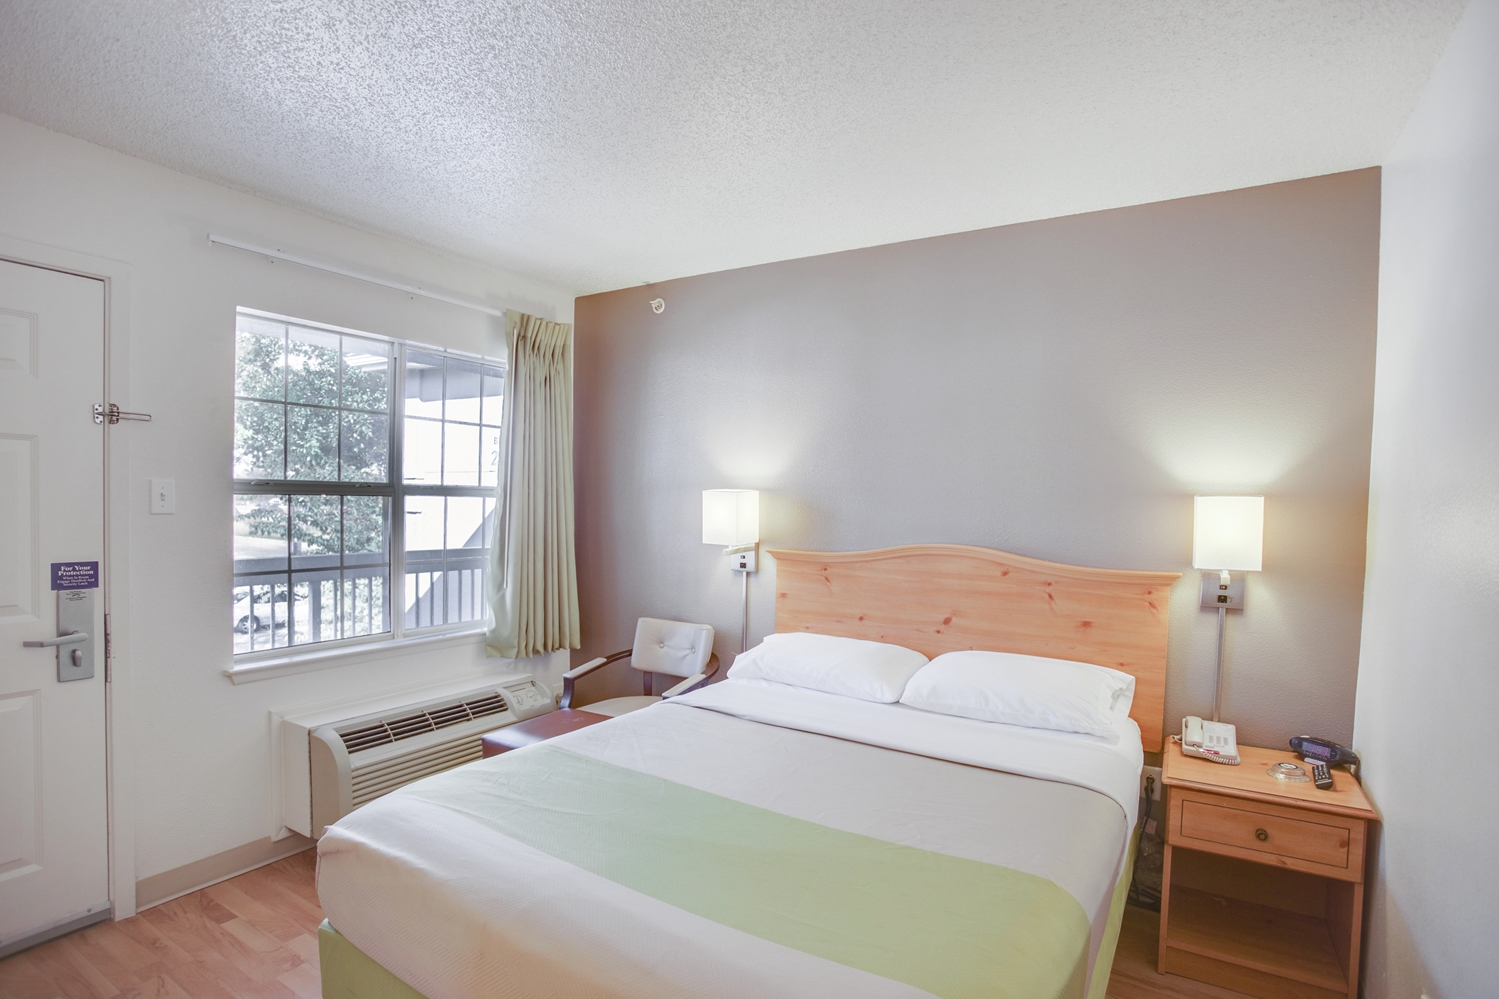 Studio 6 Extended Stay Hotel Northwest Houston, TX - See Discounts